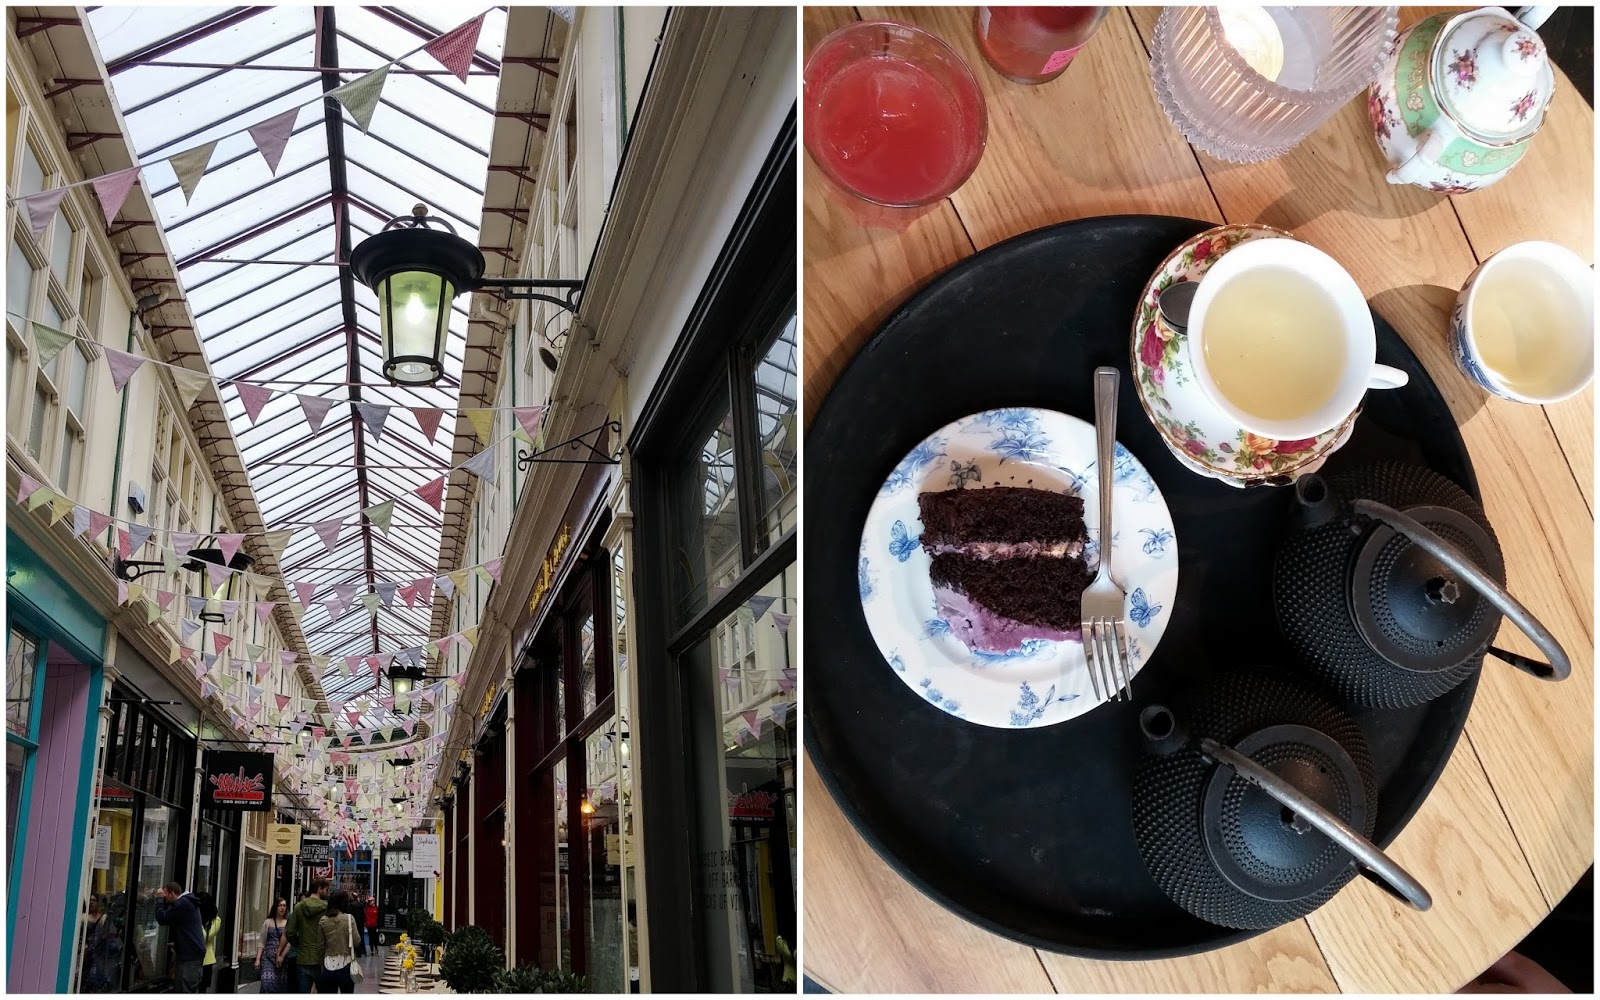 Bunting in Castle Arcade Cardiff tea and parma violet cake in Barker Tea House Cardiff